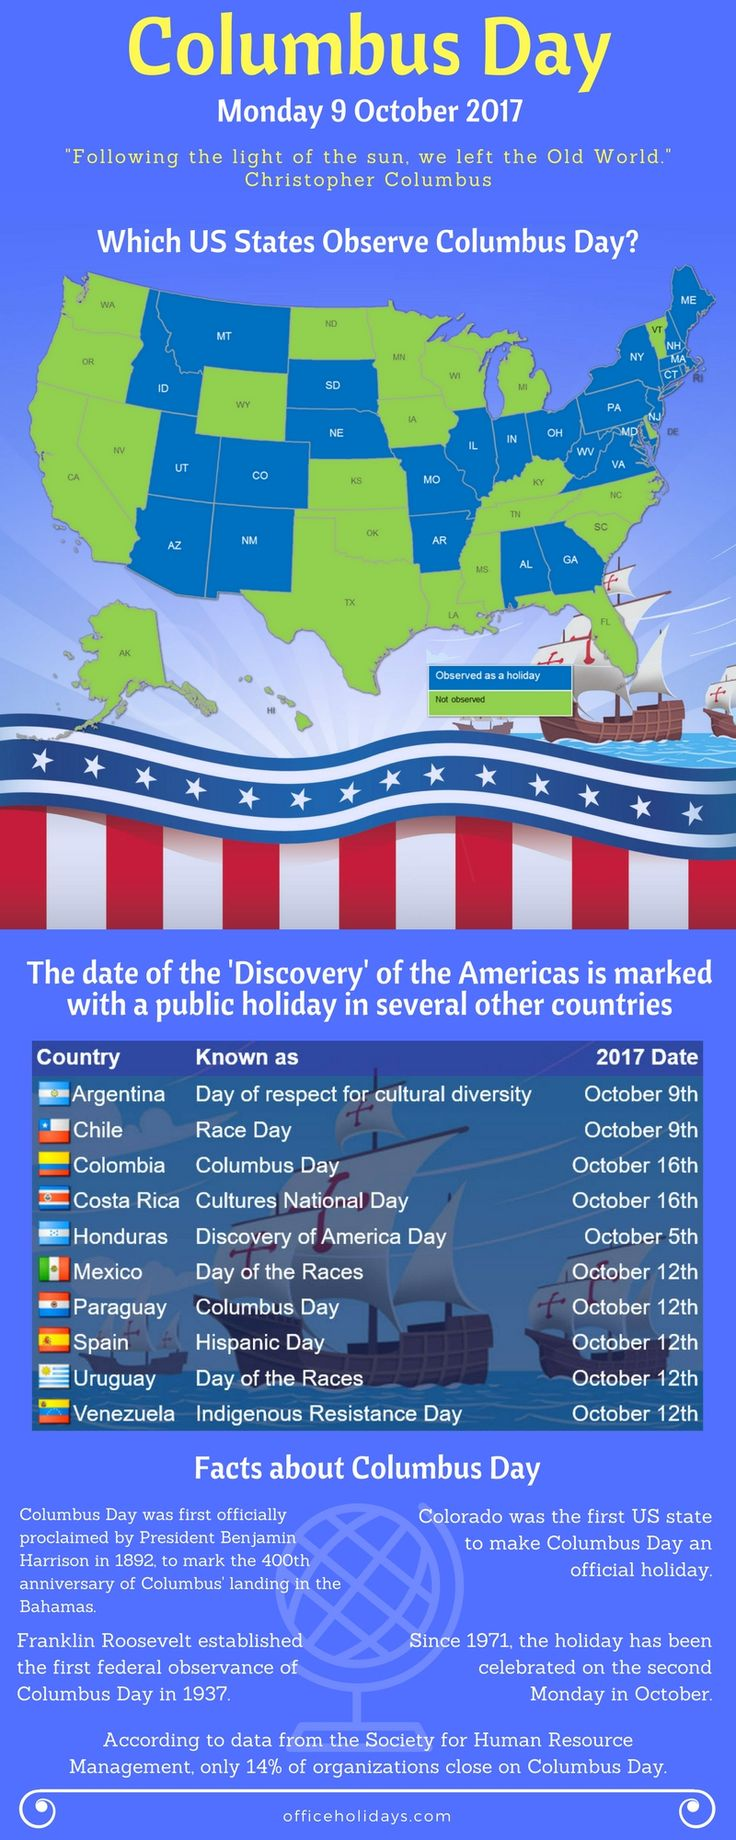 Columbus Day by State. Columbus Day is a Federal Holiday observed in many states on the second Monday in October. Our state-by-state guide shows which states observe it as a holiday.